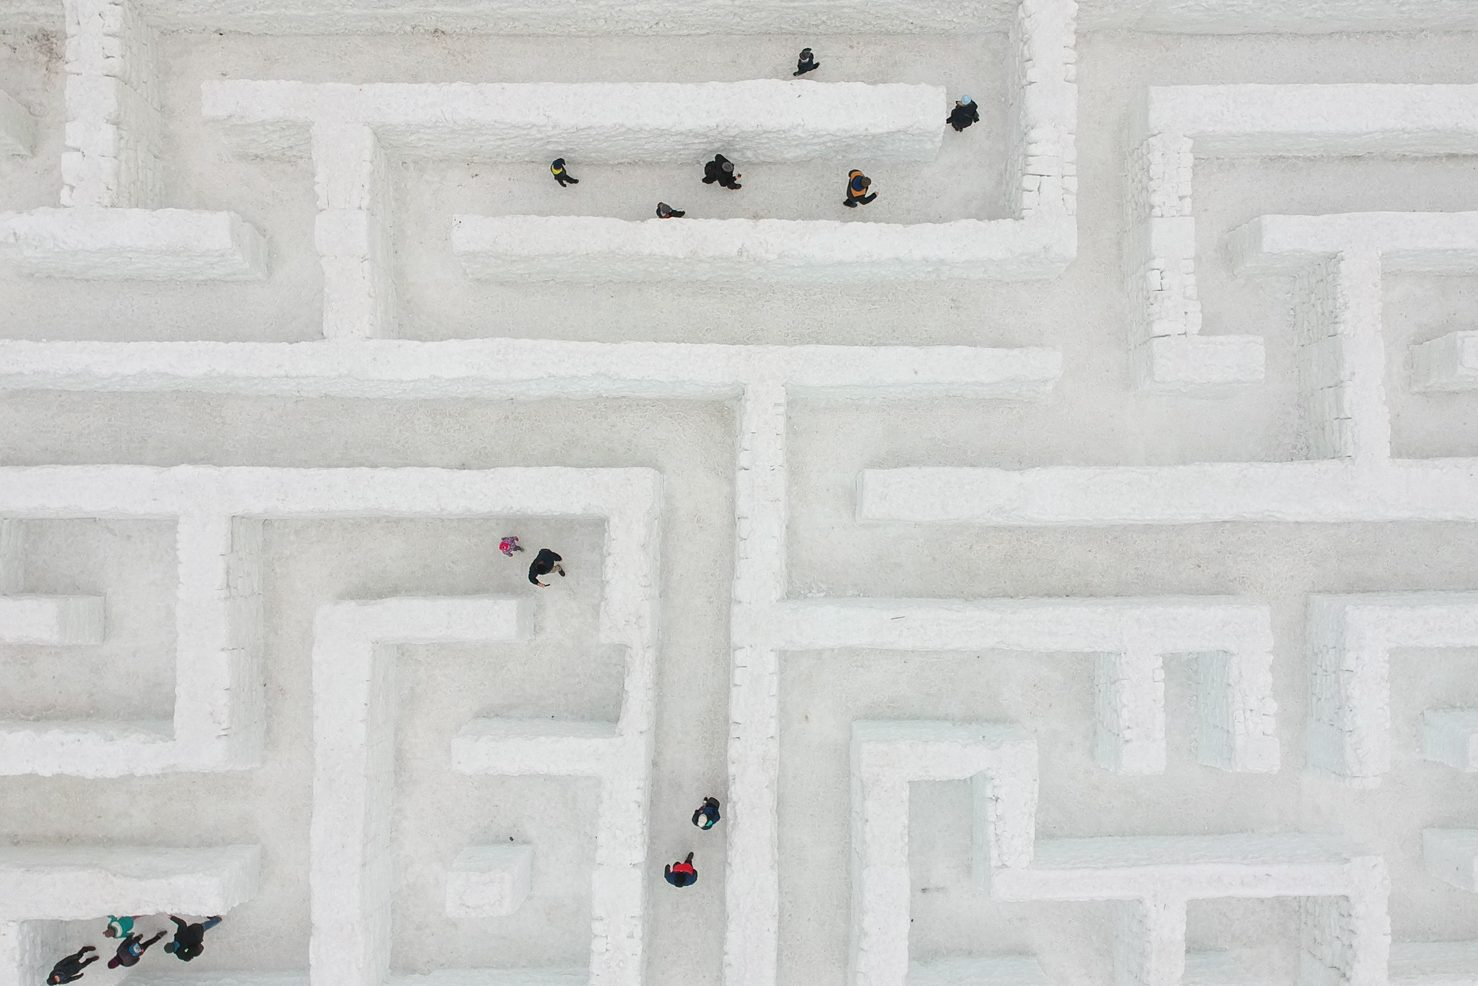 Biggest snow maze in the world in Poland